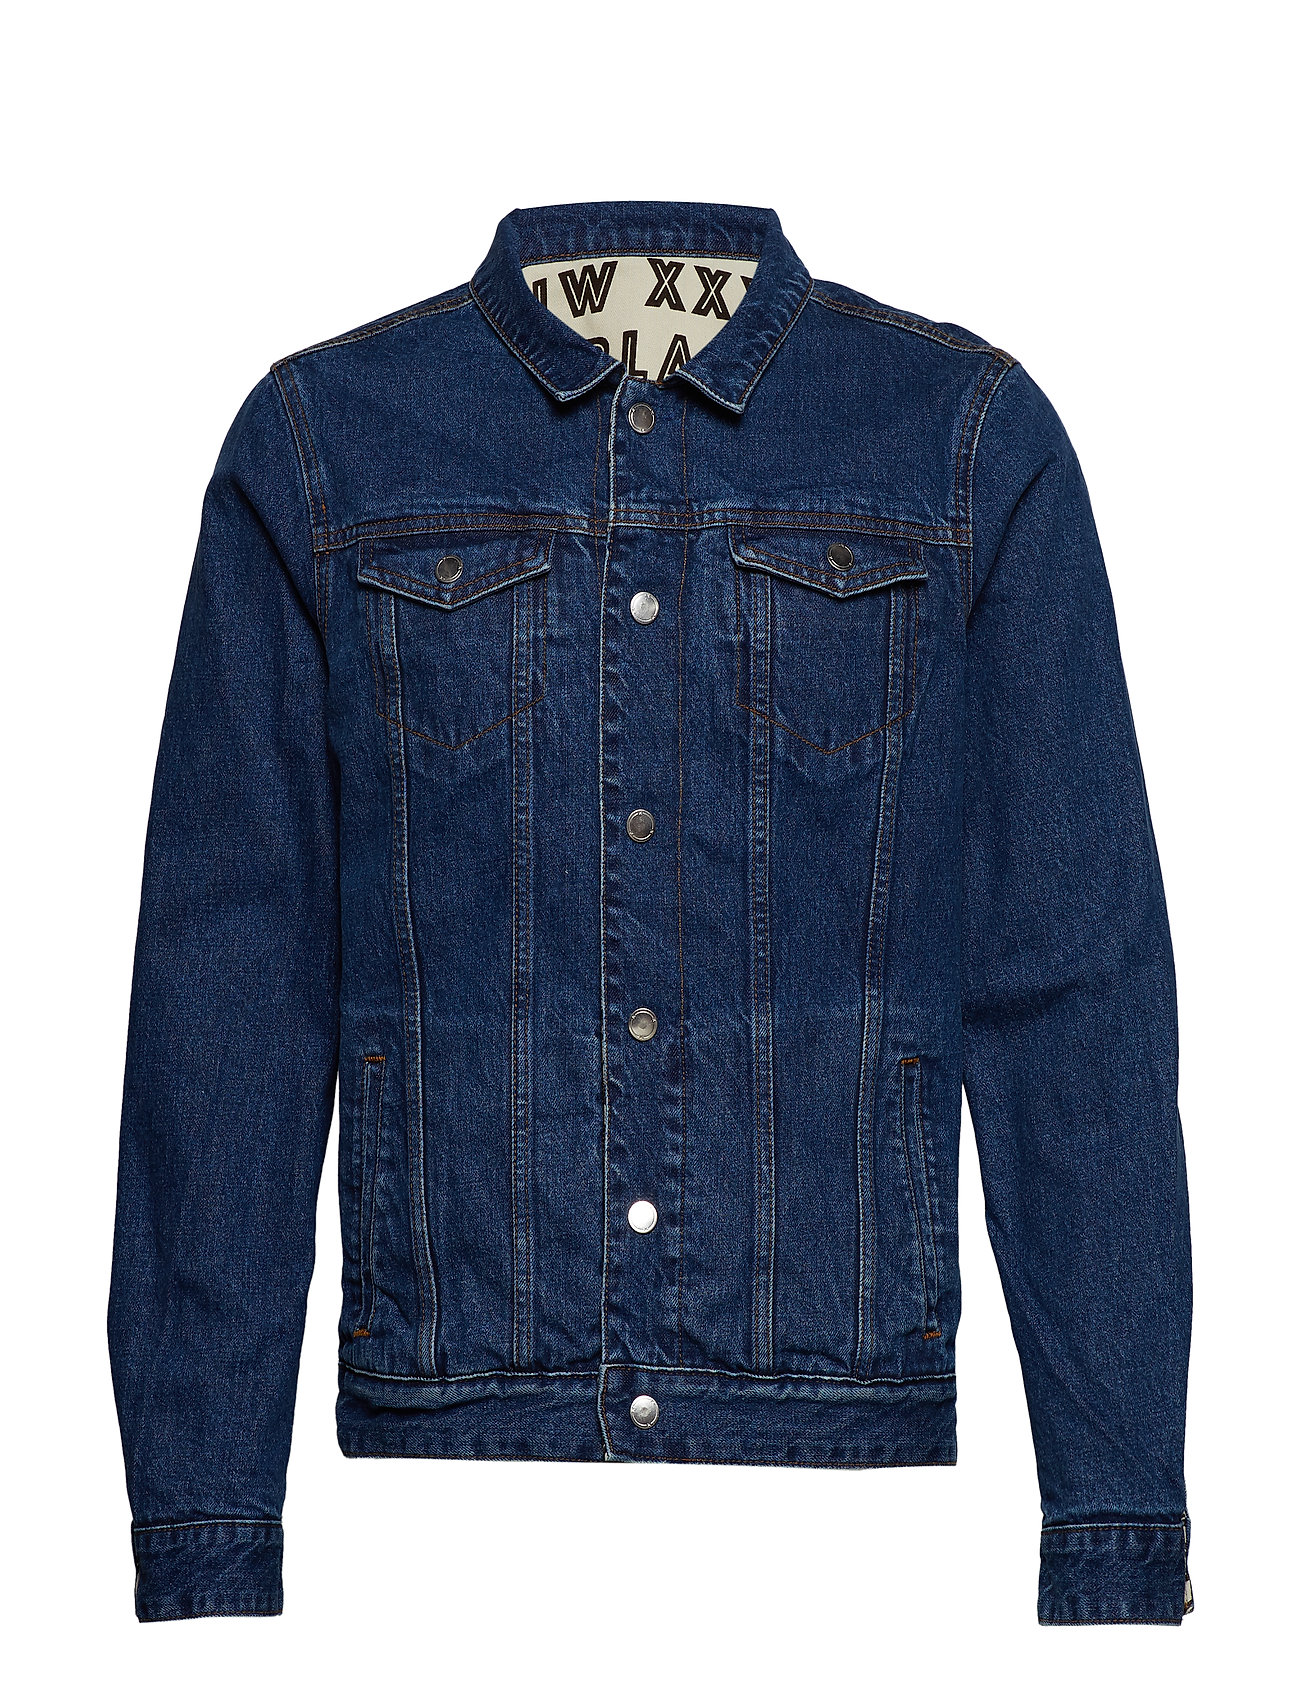 Scotch & Soda Reversible denim and canvas trucker jacket with allover prin - COMBO A